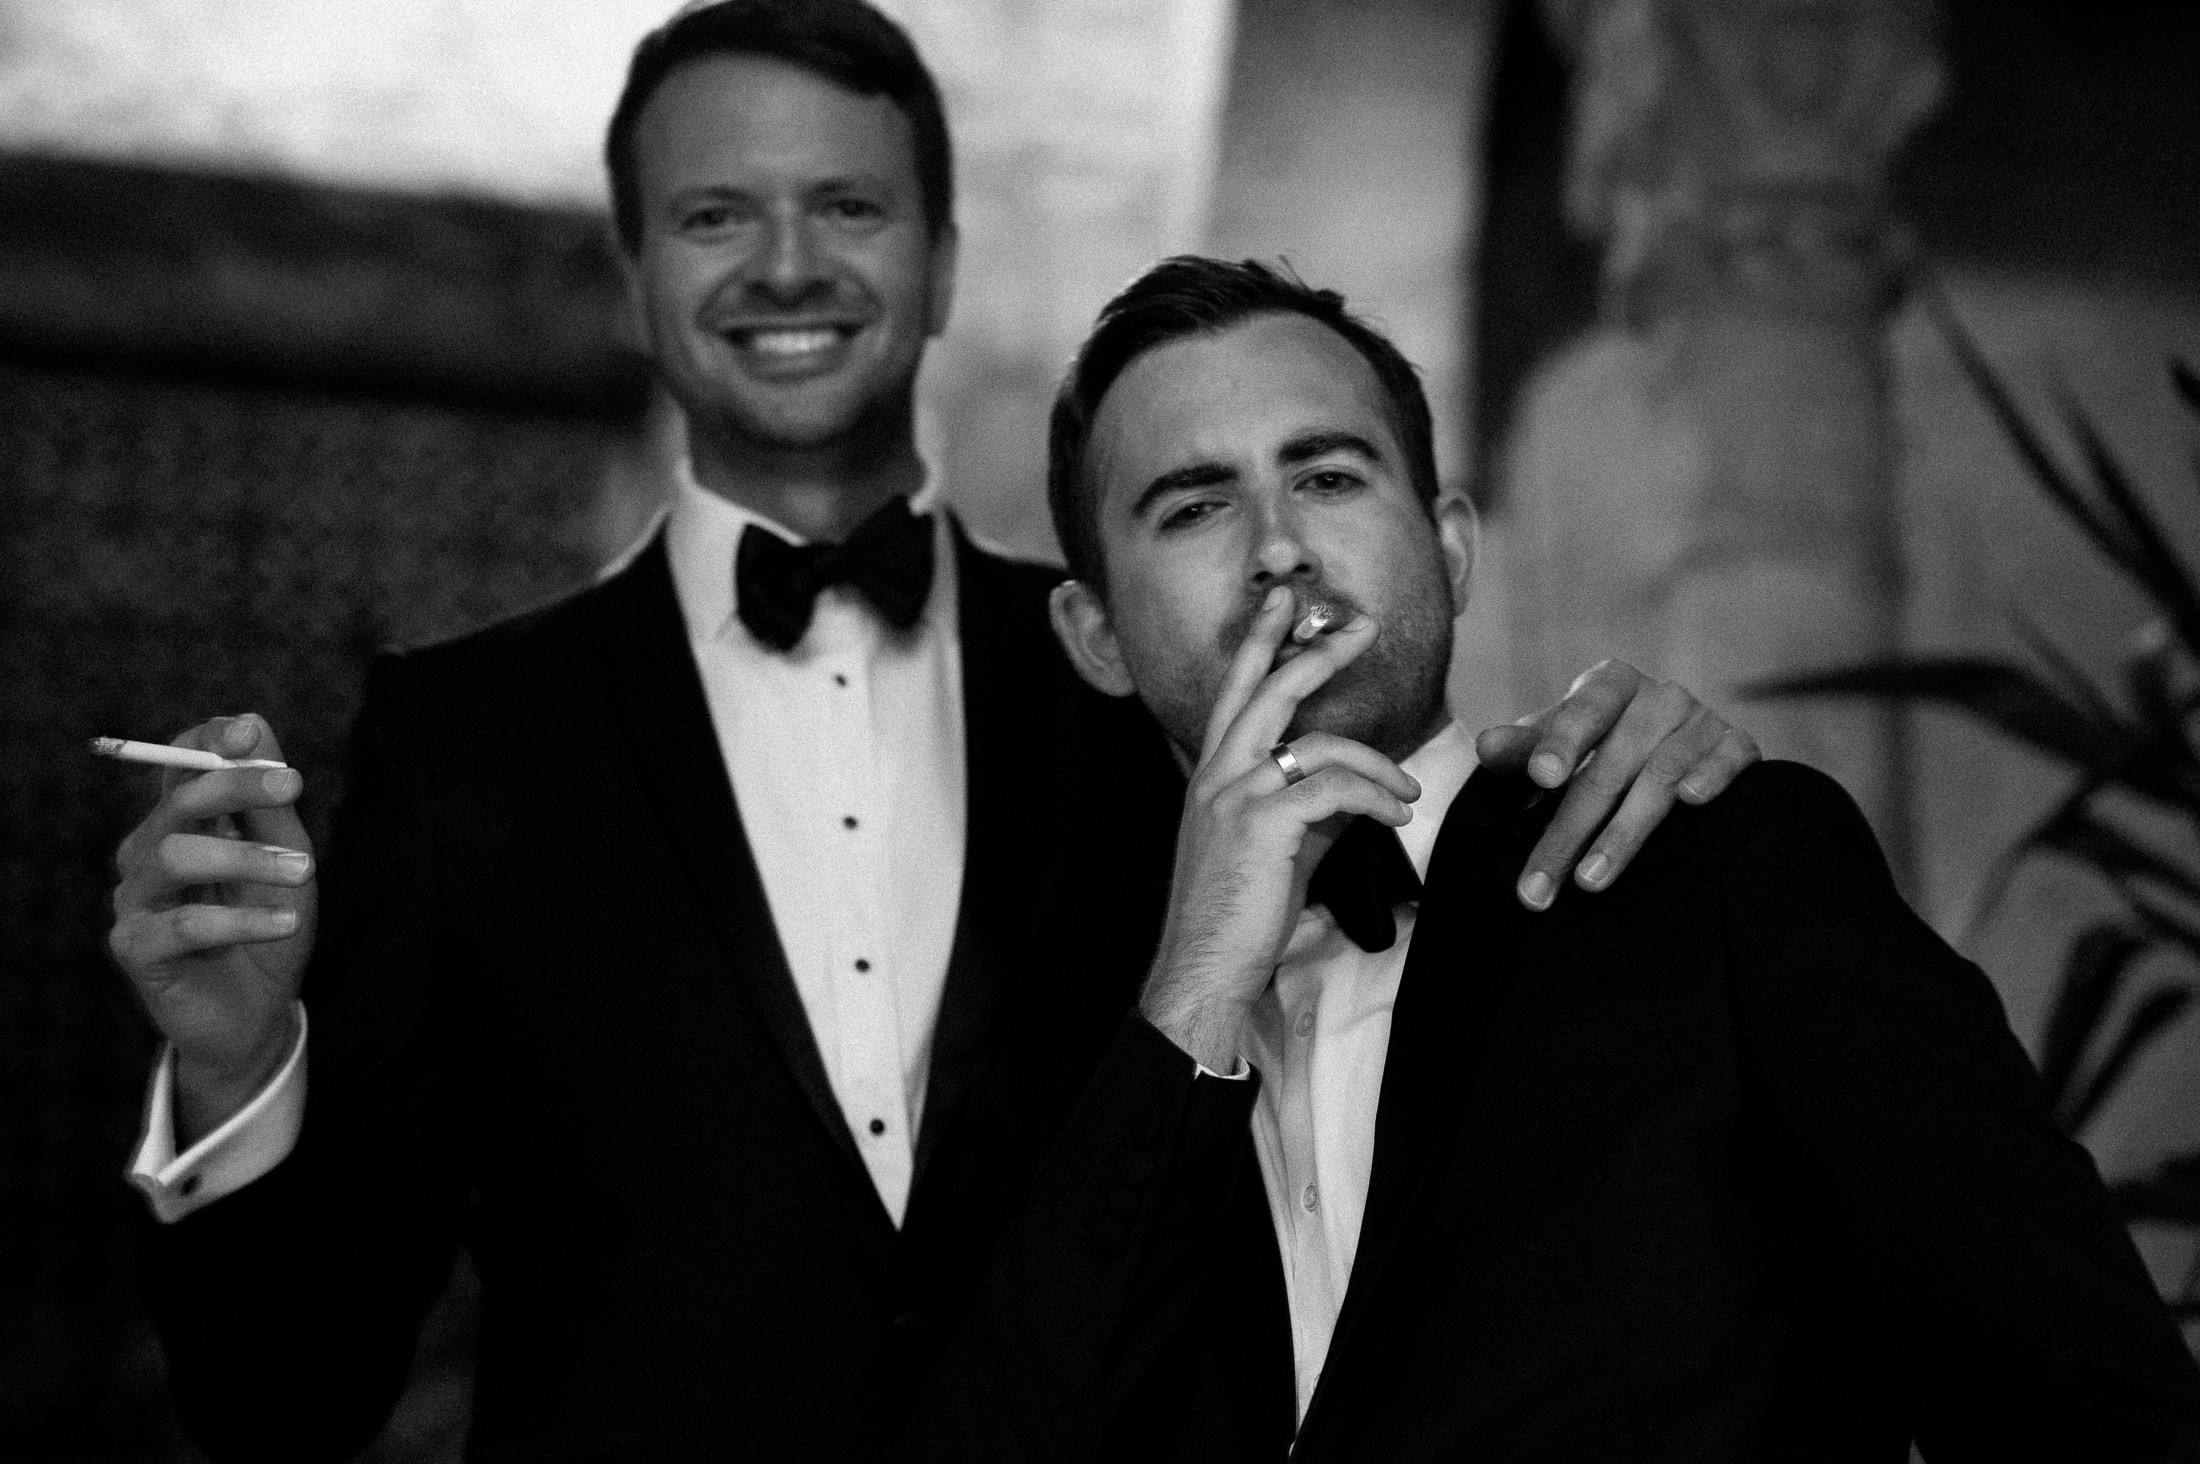 two wedding guests smoking a cigarette